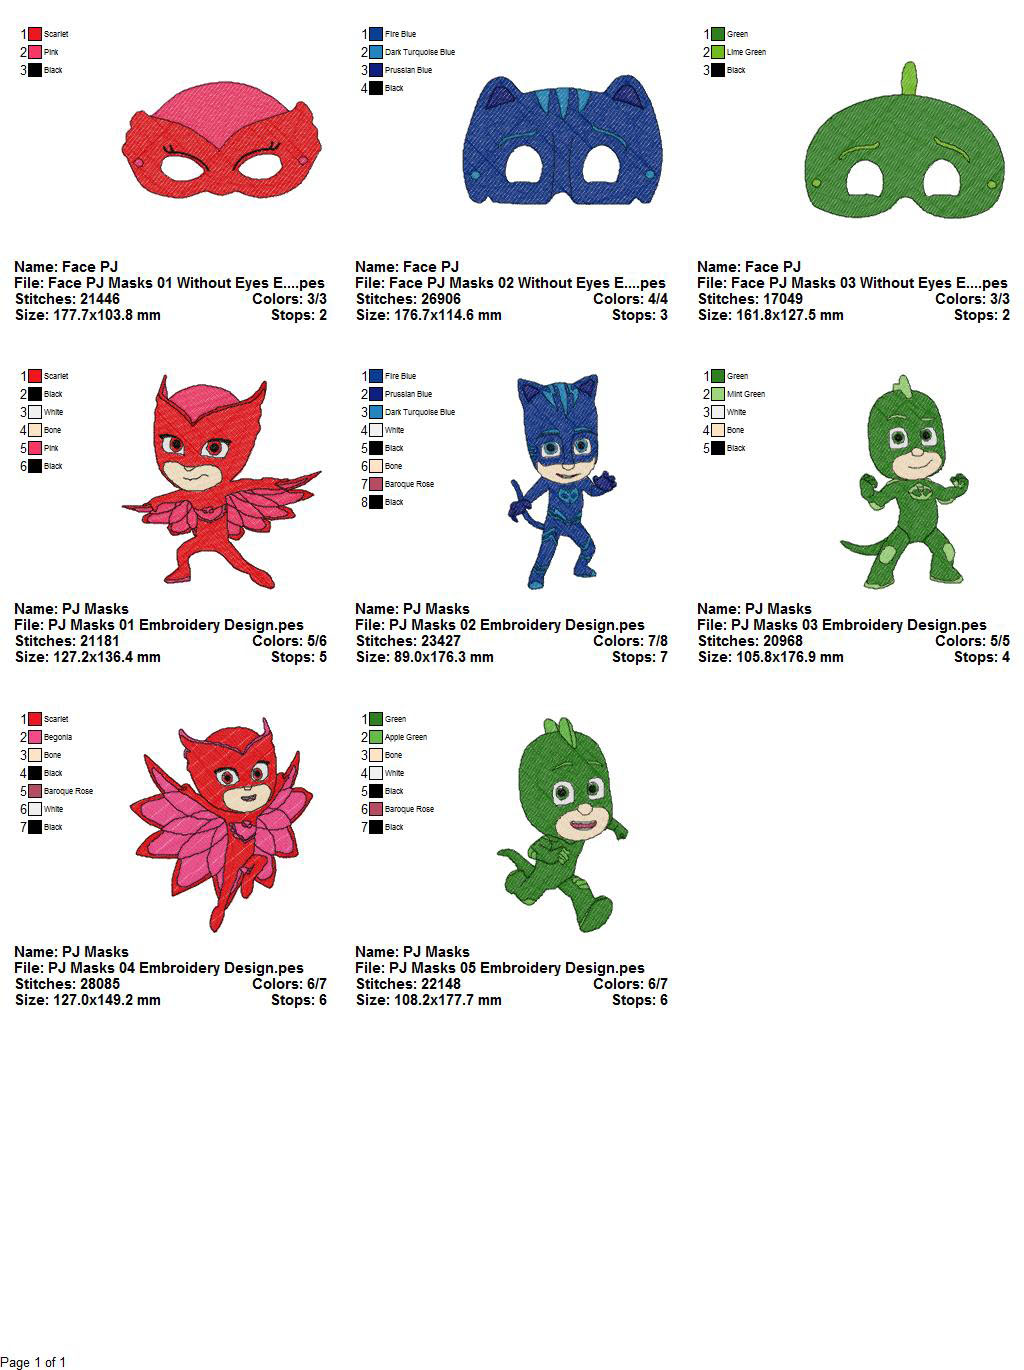 Package pj masks embroidery designs